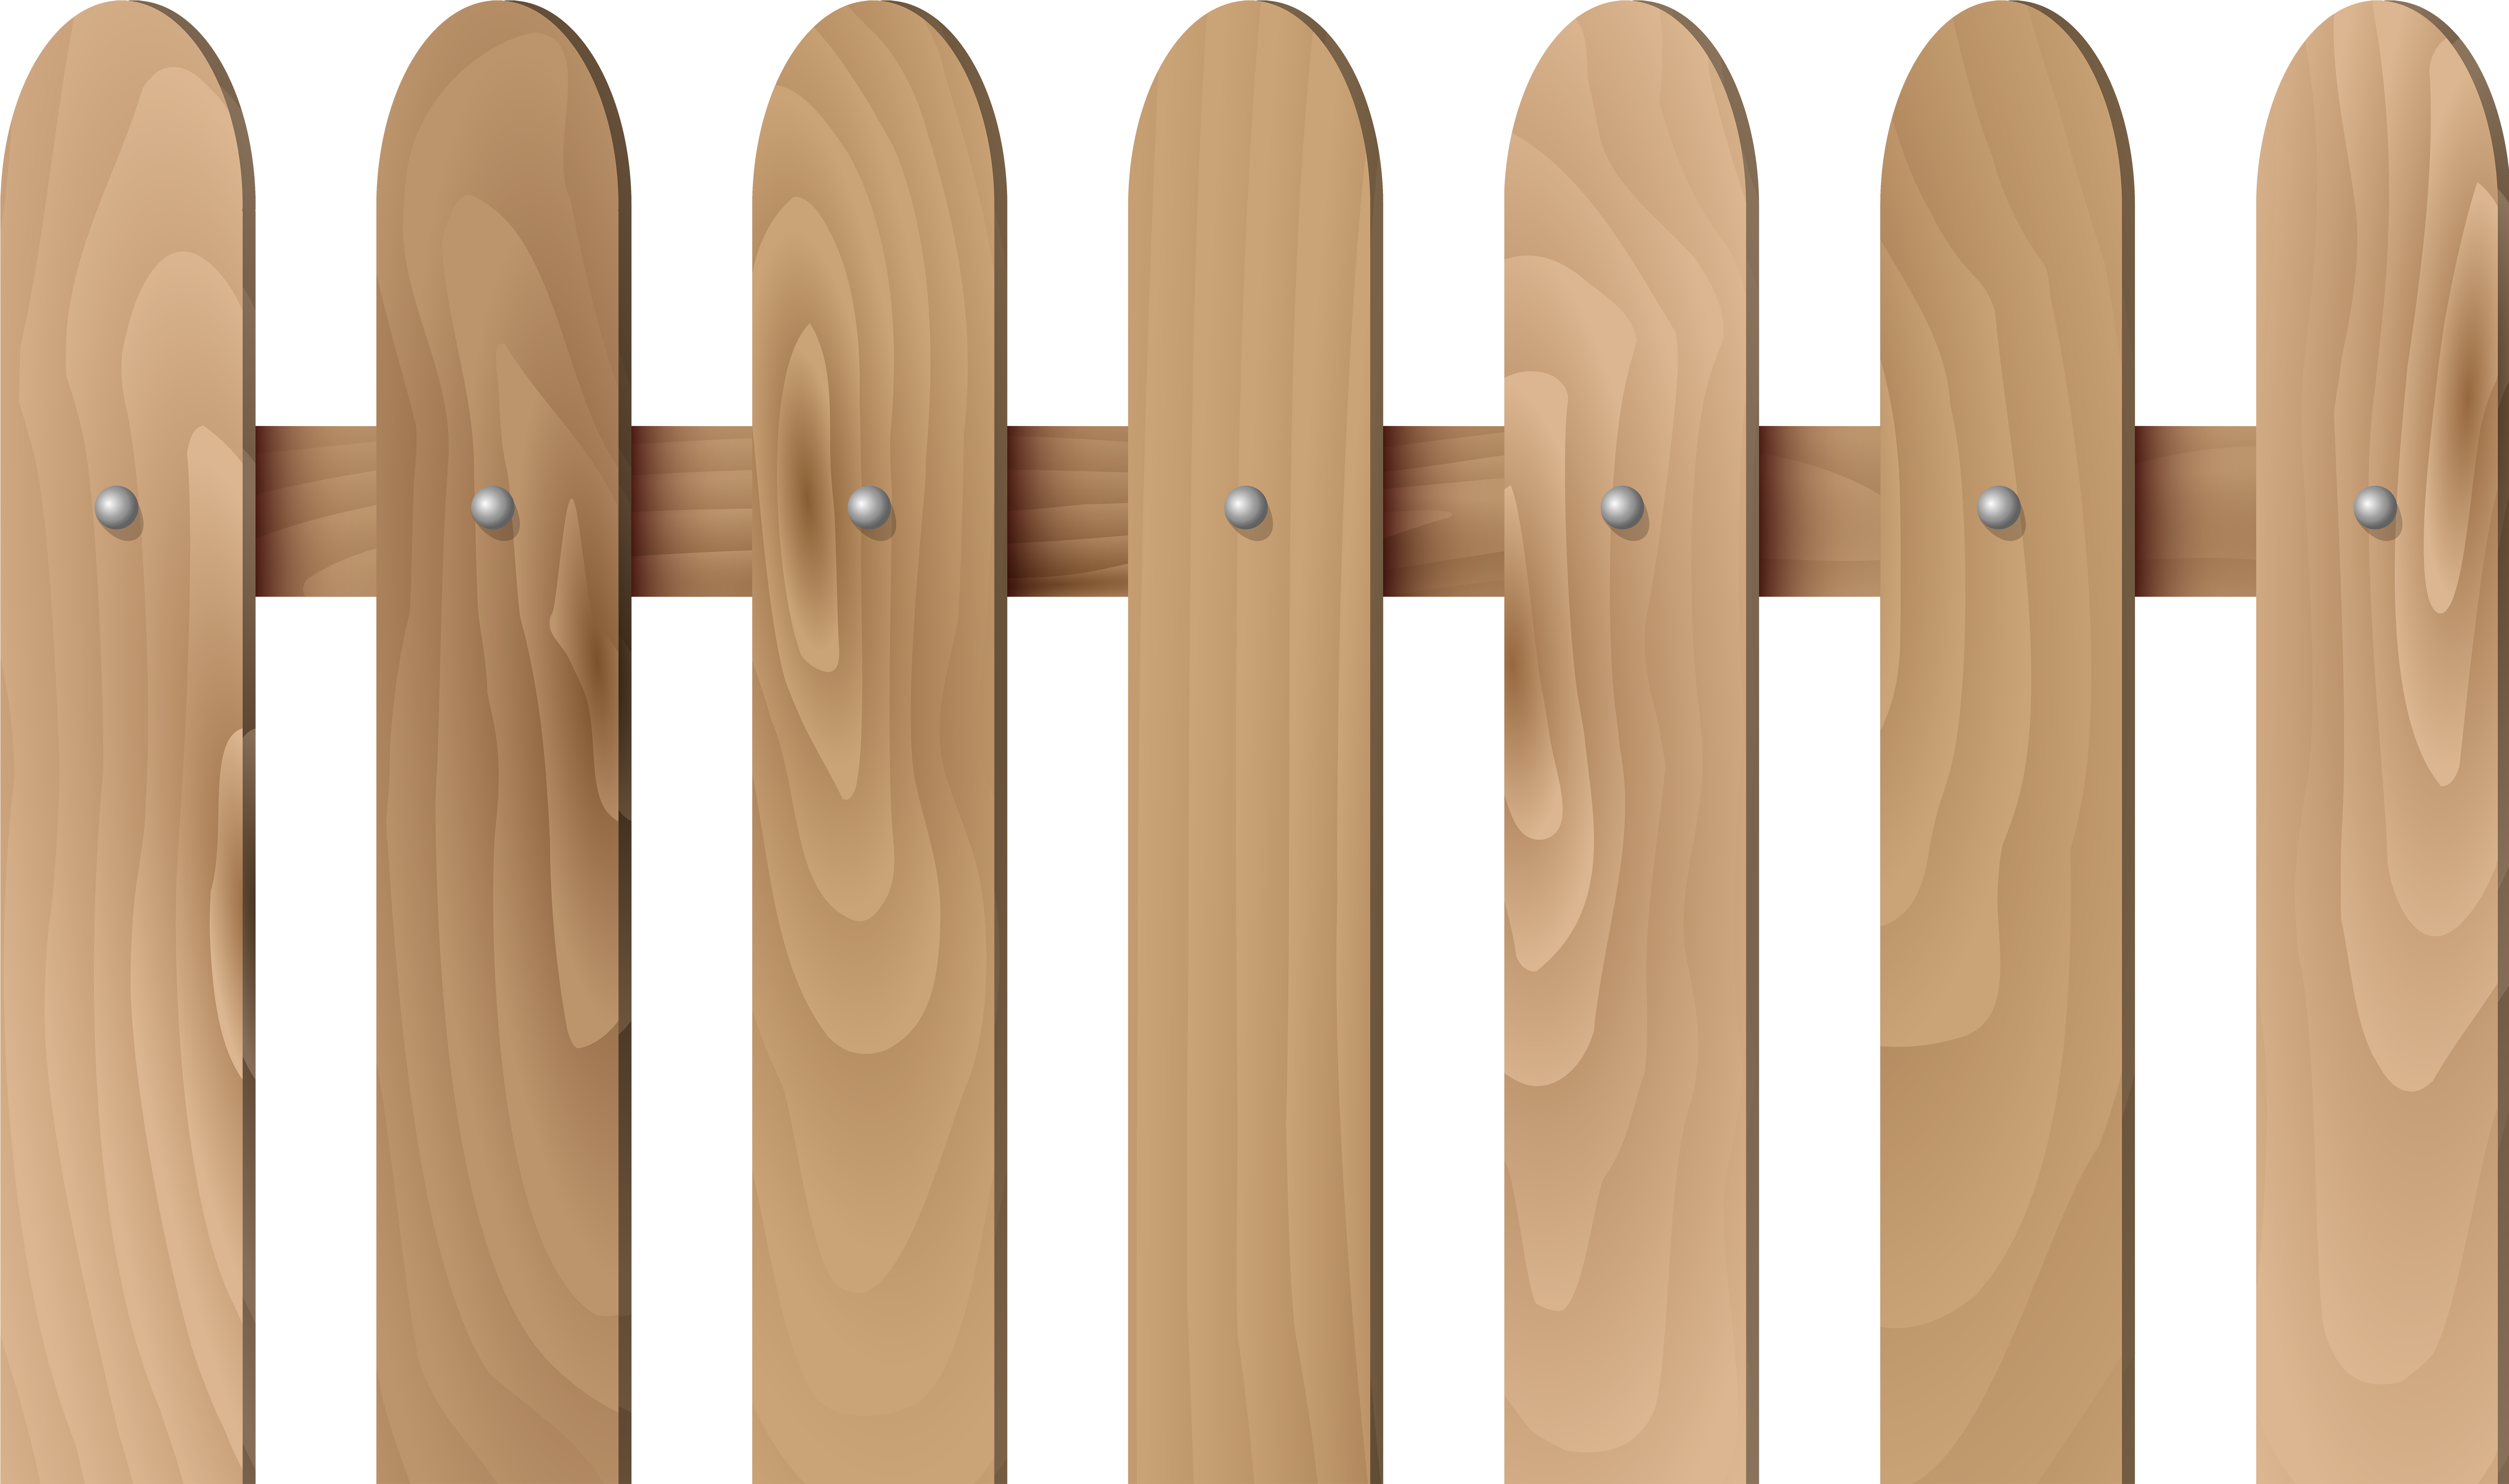 Fencing clipart wood fence. Hd wooden png